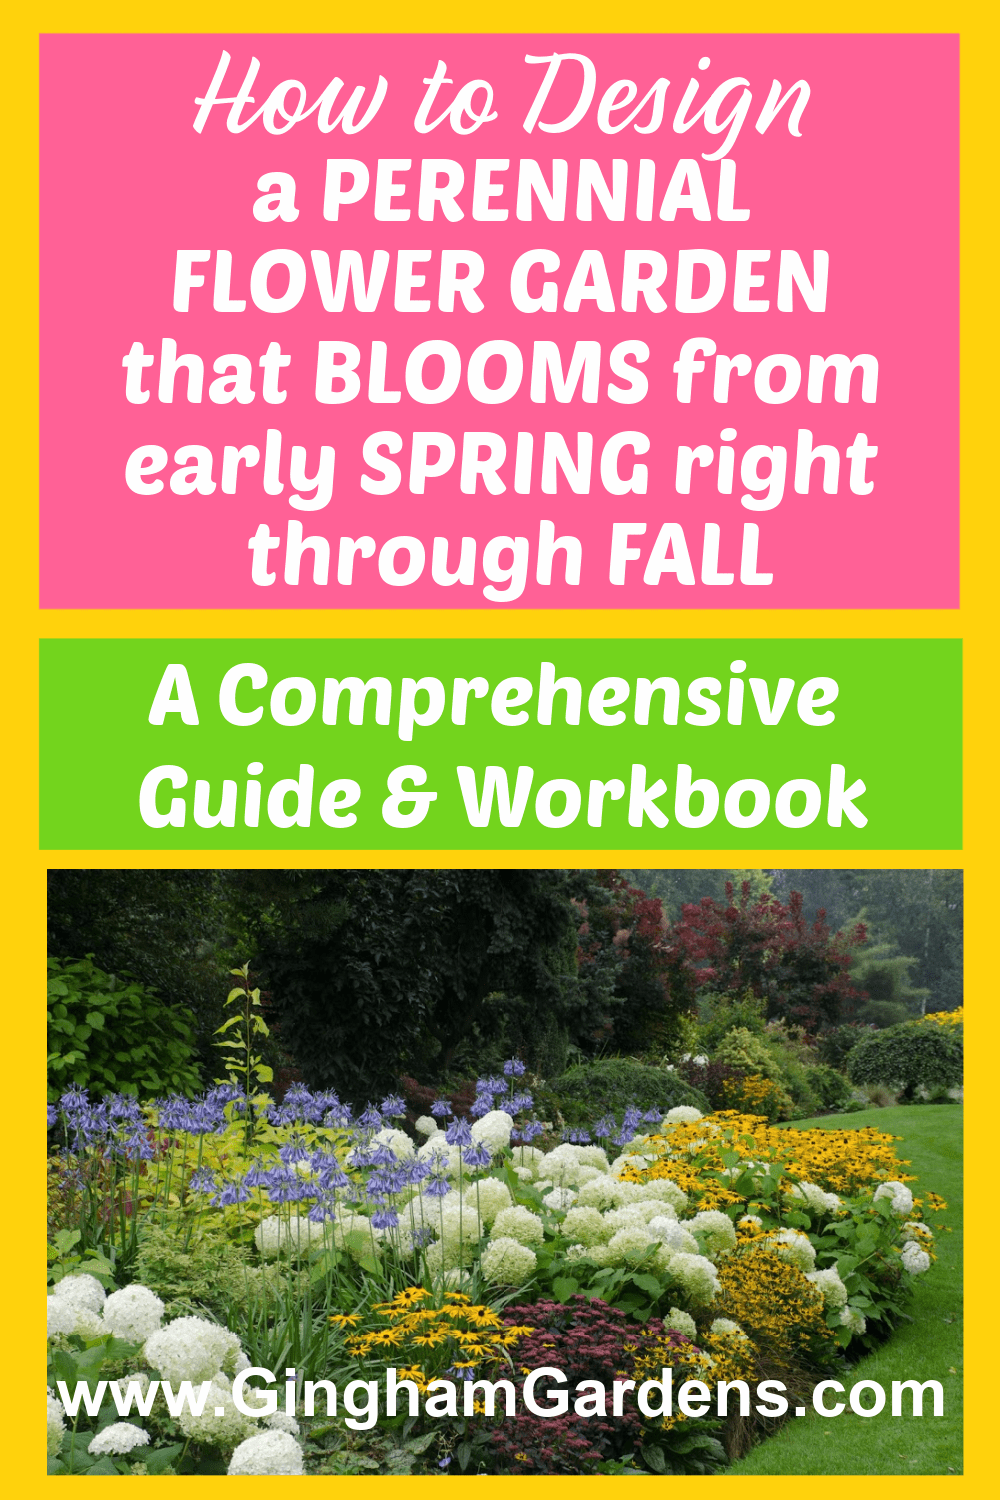 Image of a flower garden with text overlay - How to Design a Perennial Flower Garden that Blooms from Early Spring right through Fall